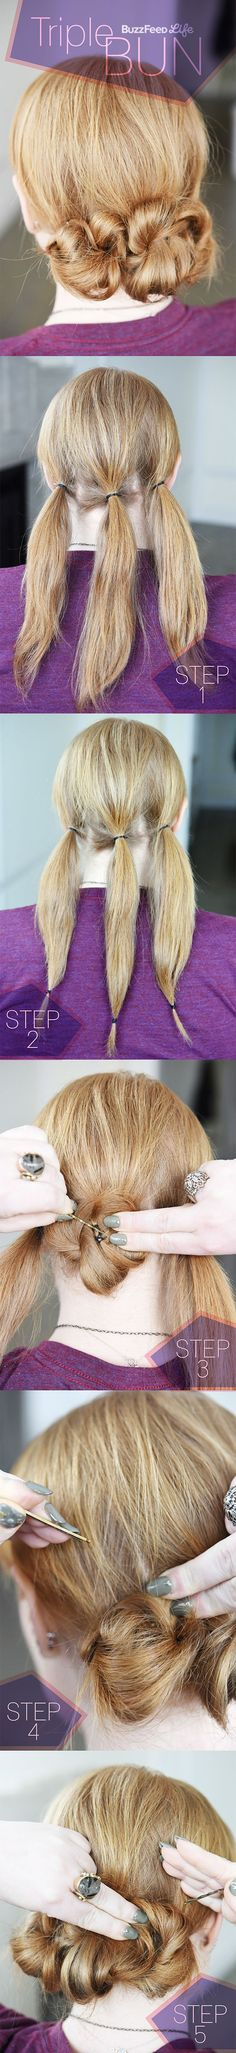 30 Stunning NoHeat Hairstyles To Help You Through Summer your hair into three mini buns. 30 Stunning No-Heat Hairstyles To Help You Through Stunning No-Heat Hairstyles To Help You Through Summer 30 Stunning NoHeat Hairstyles To Help You Through Summer y No Heat Hairstyles, Ponytail Hairstyles, Summer Hairstyles, Pretty Hairstyles, Hairstyle Ideas, Amazing Hairstyles, Teenager Style, School Hairdos, Natural Hair Styles